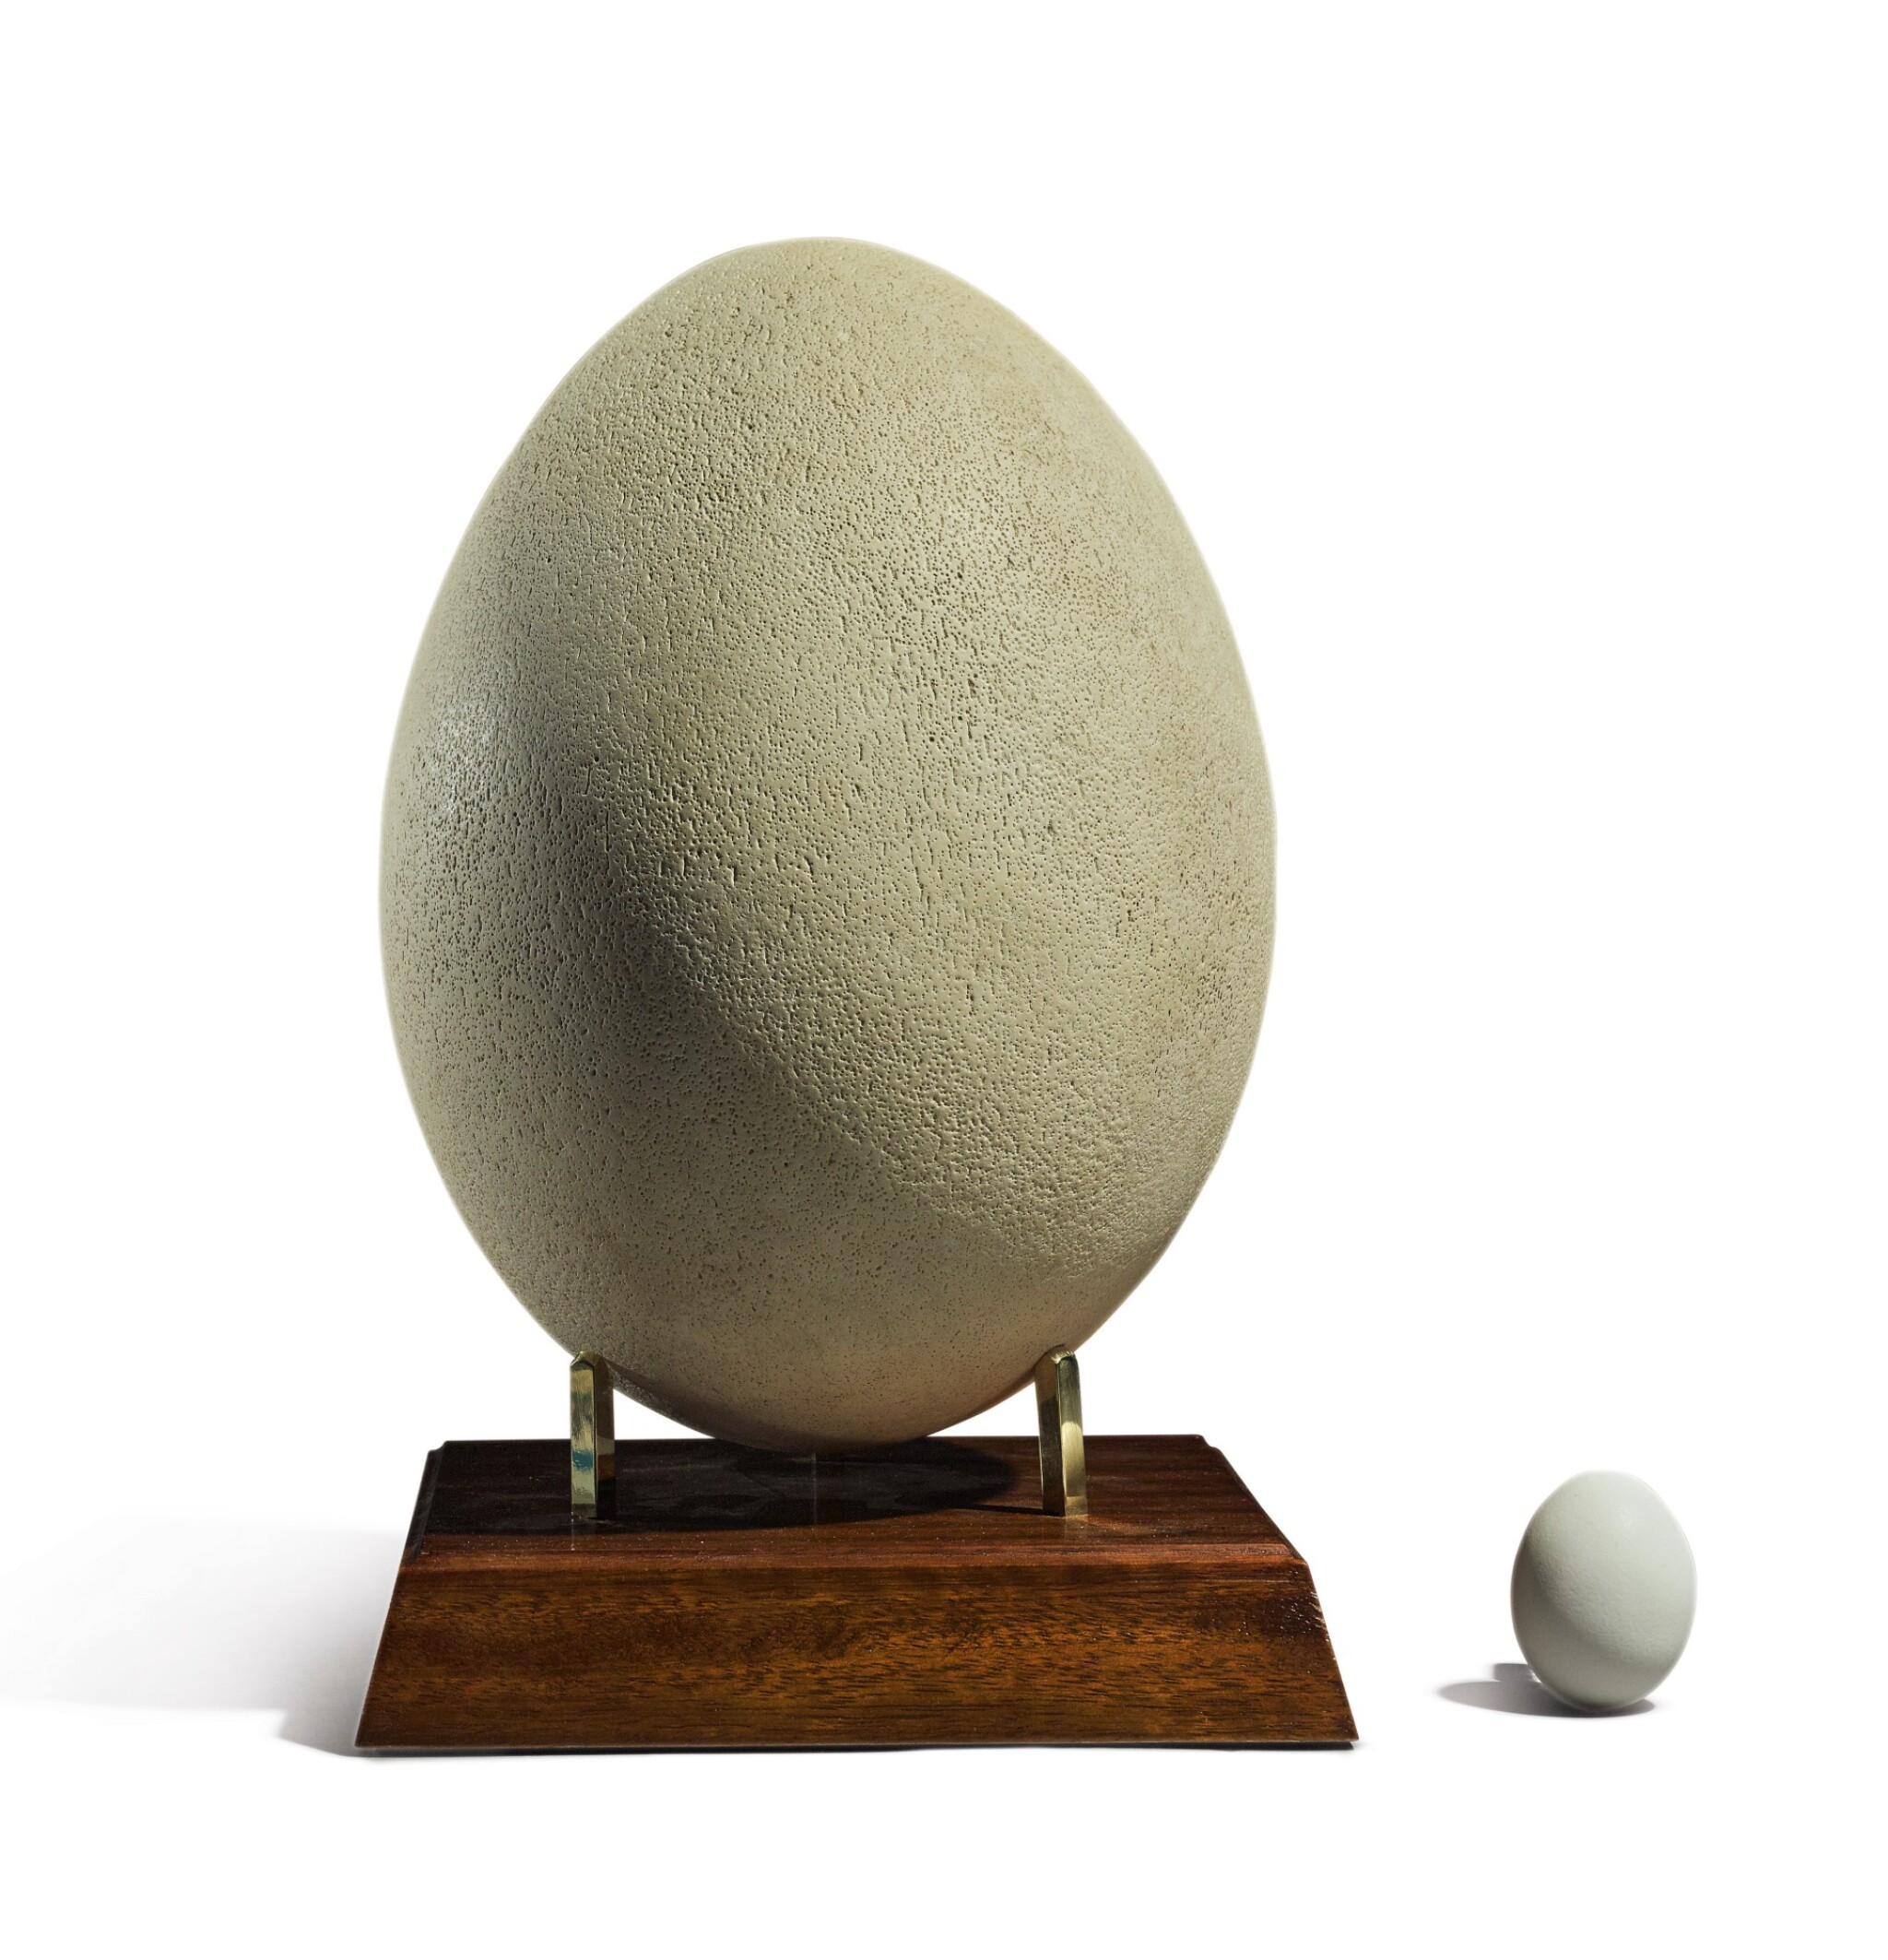 View full screen - View 1 of Lot 53. AN INTACT EGG OF THE AEPYORNIS MAXIMUS, OR ELEPHANT BIRD, PRE-17TH CENTURY.